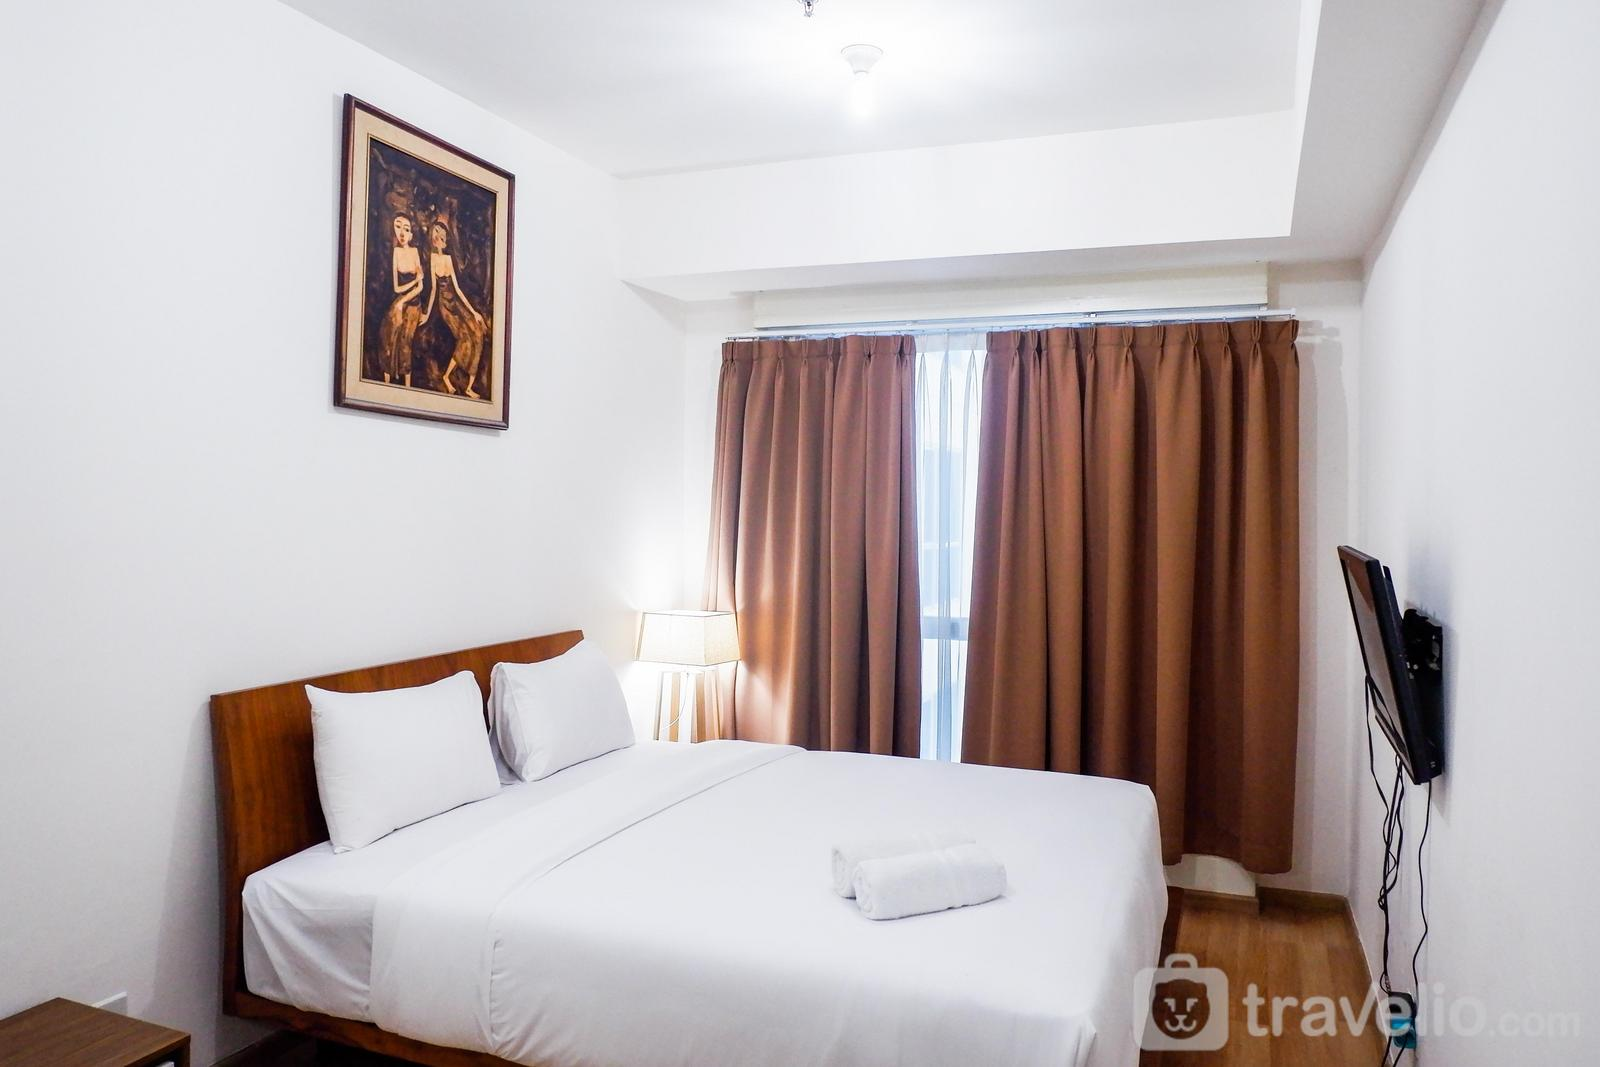 Casa Grande Residence - Exclusive Stay 1BR Apartment at Casa Grande Residence By Travelio